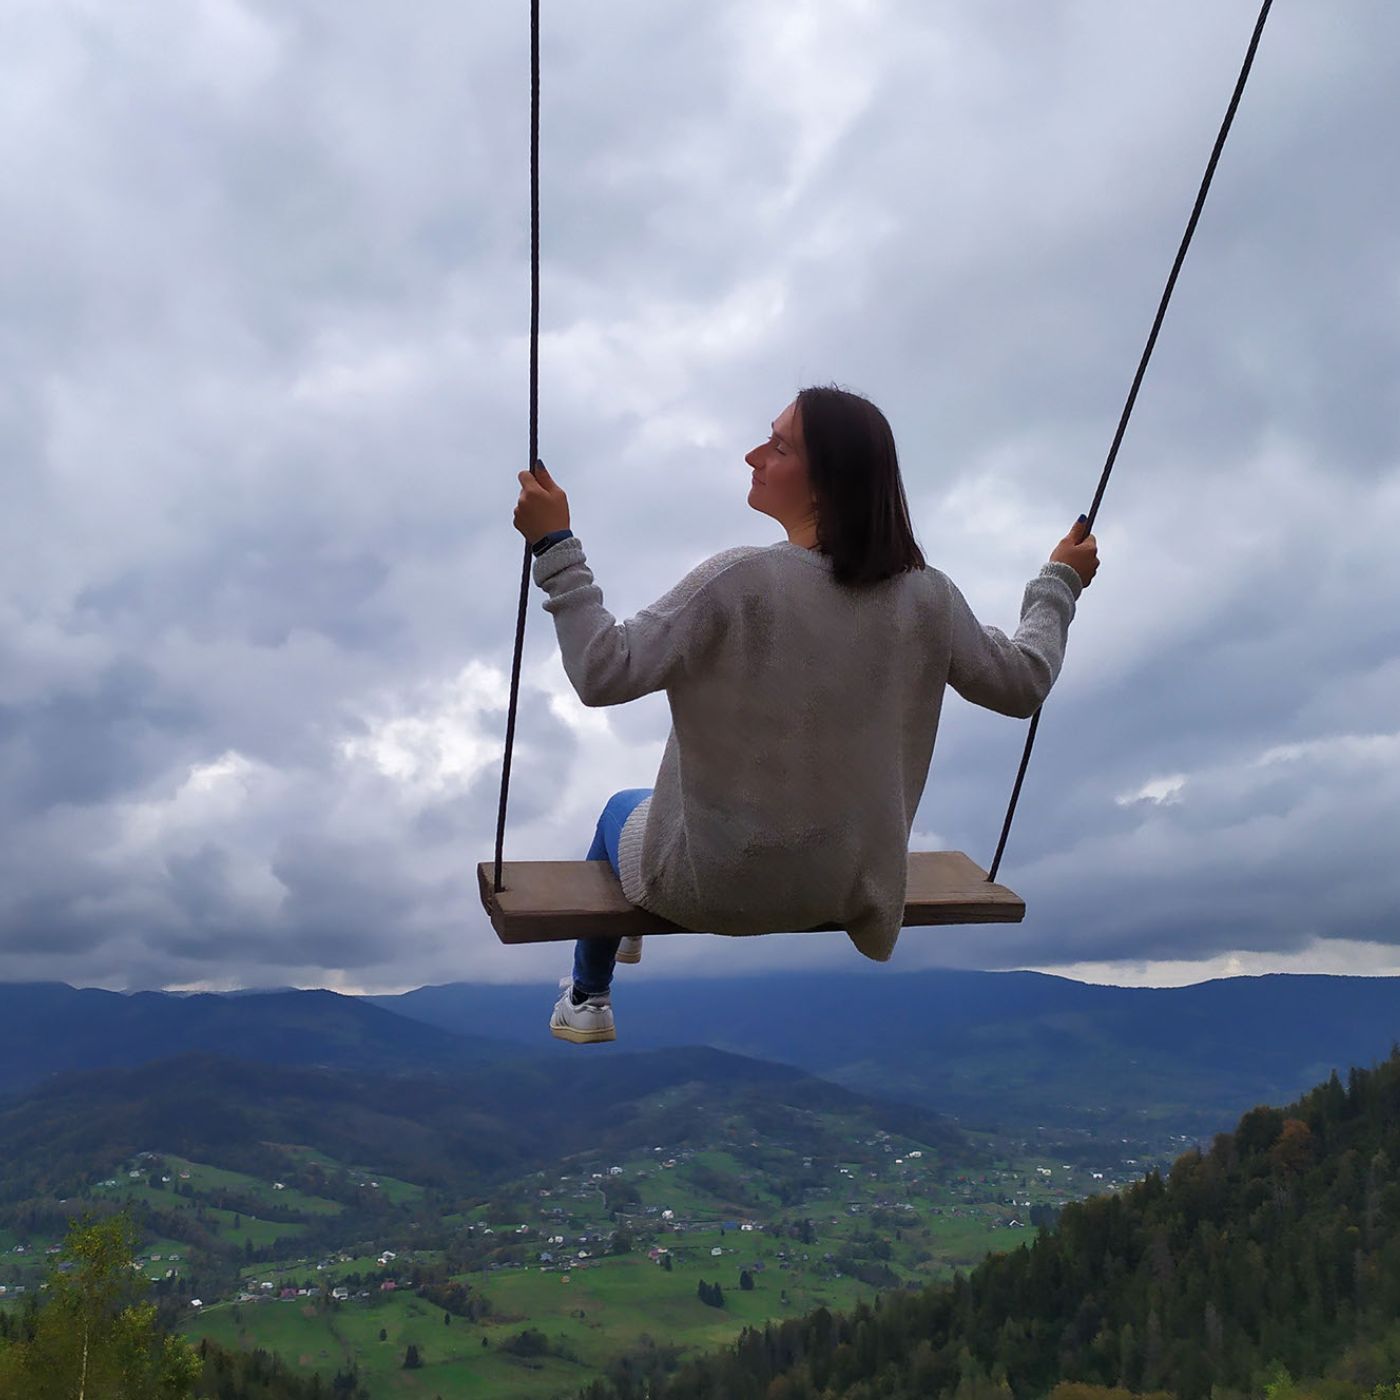 Woman on a swing with a travel landscape in the background.